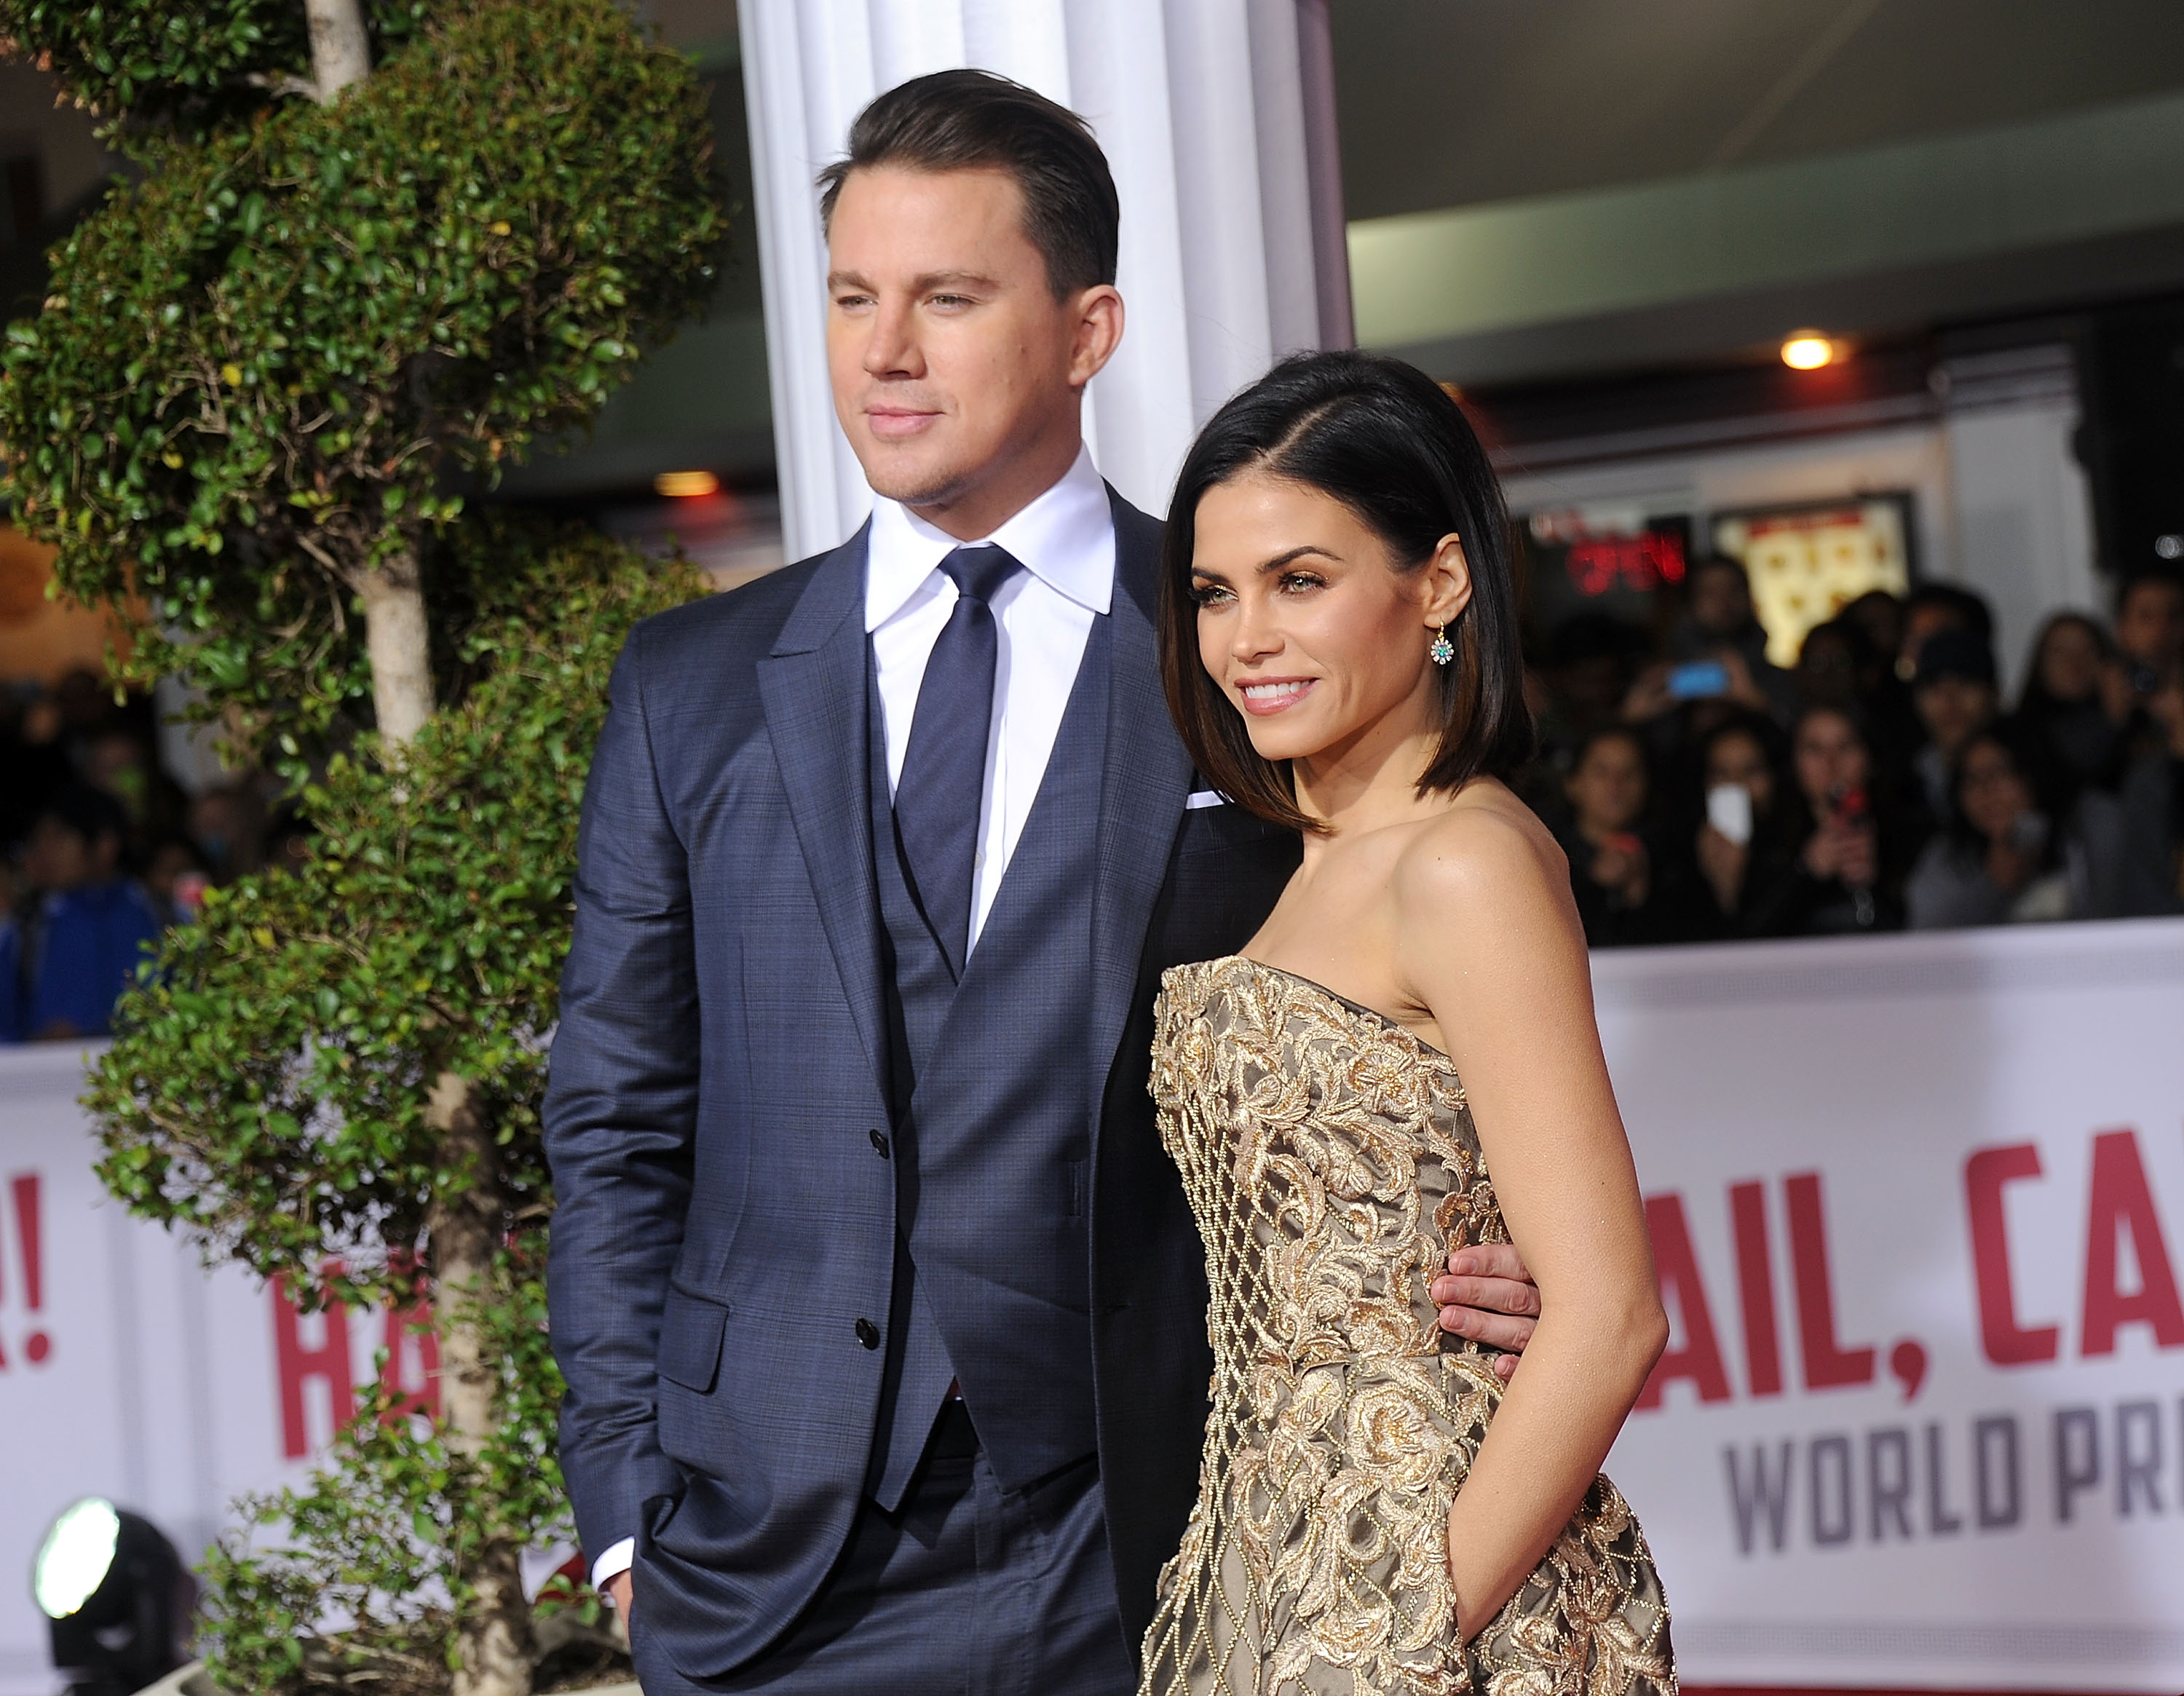 Actors Channing Tatum and Jenna Dewan Tatum arrive at the premiere of Universal Pictures'  Hail, Caesar!  at Regency Village Theatre on February 1, 2016 in Westwood, California.  (Photo by Gregg DeGuire/WireImage)